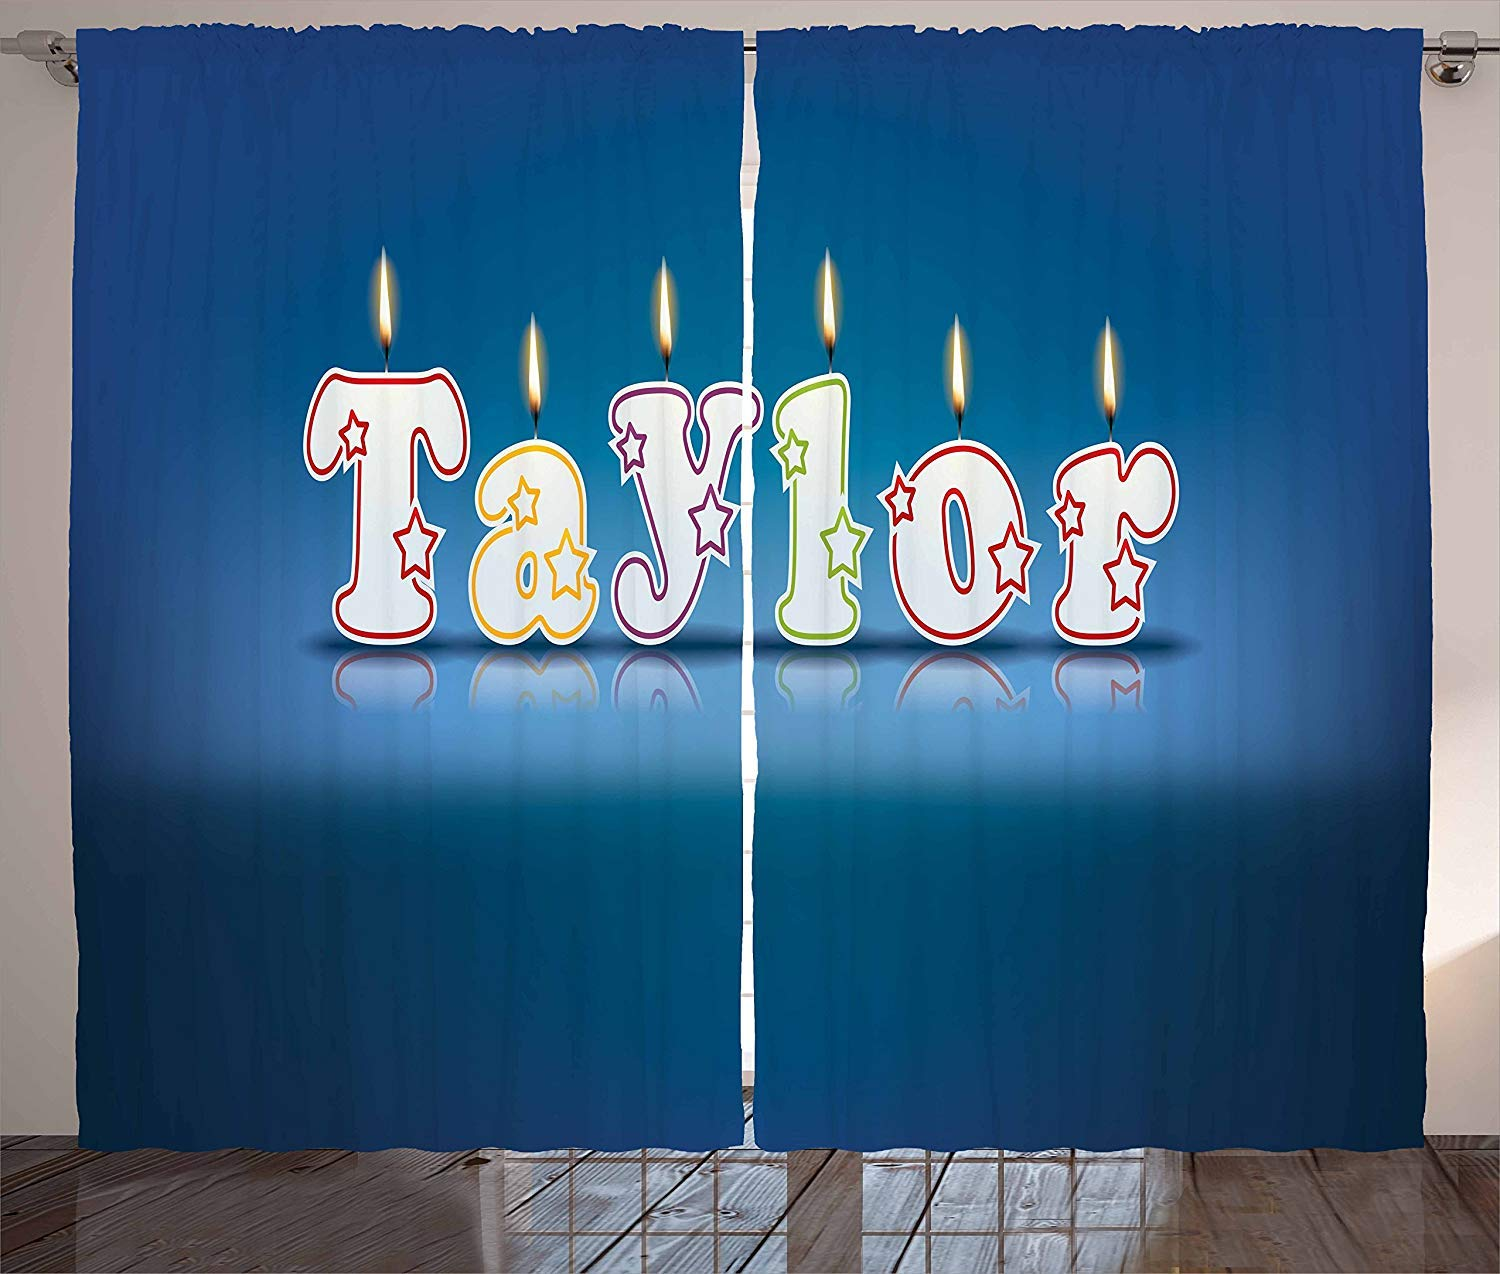 Libaoge taylor kitchen curtains common given name in english happy occasion candles font design on blue 2 panel set for living room kitchen cafe